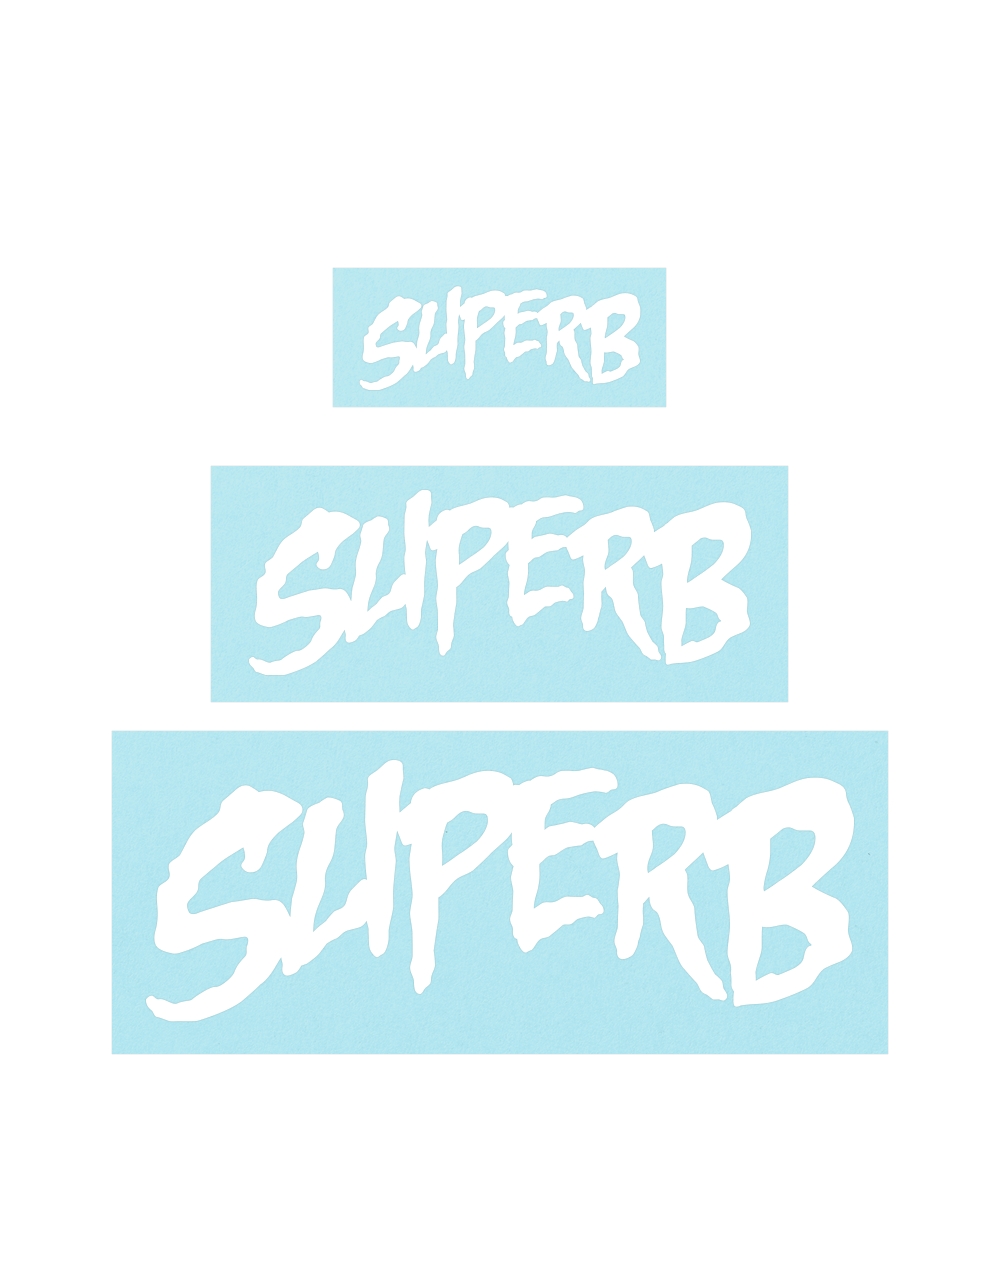 Sticker-Superb-zombie-1280-blanc